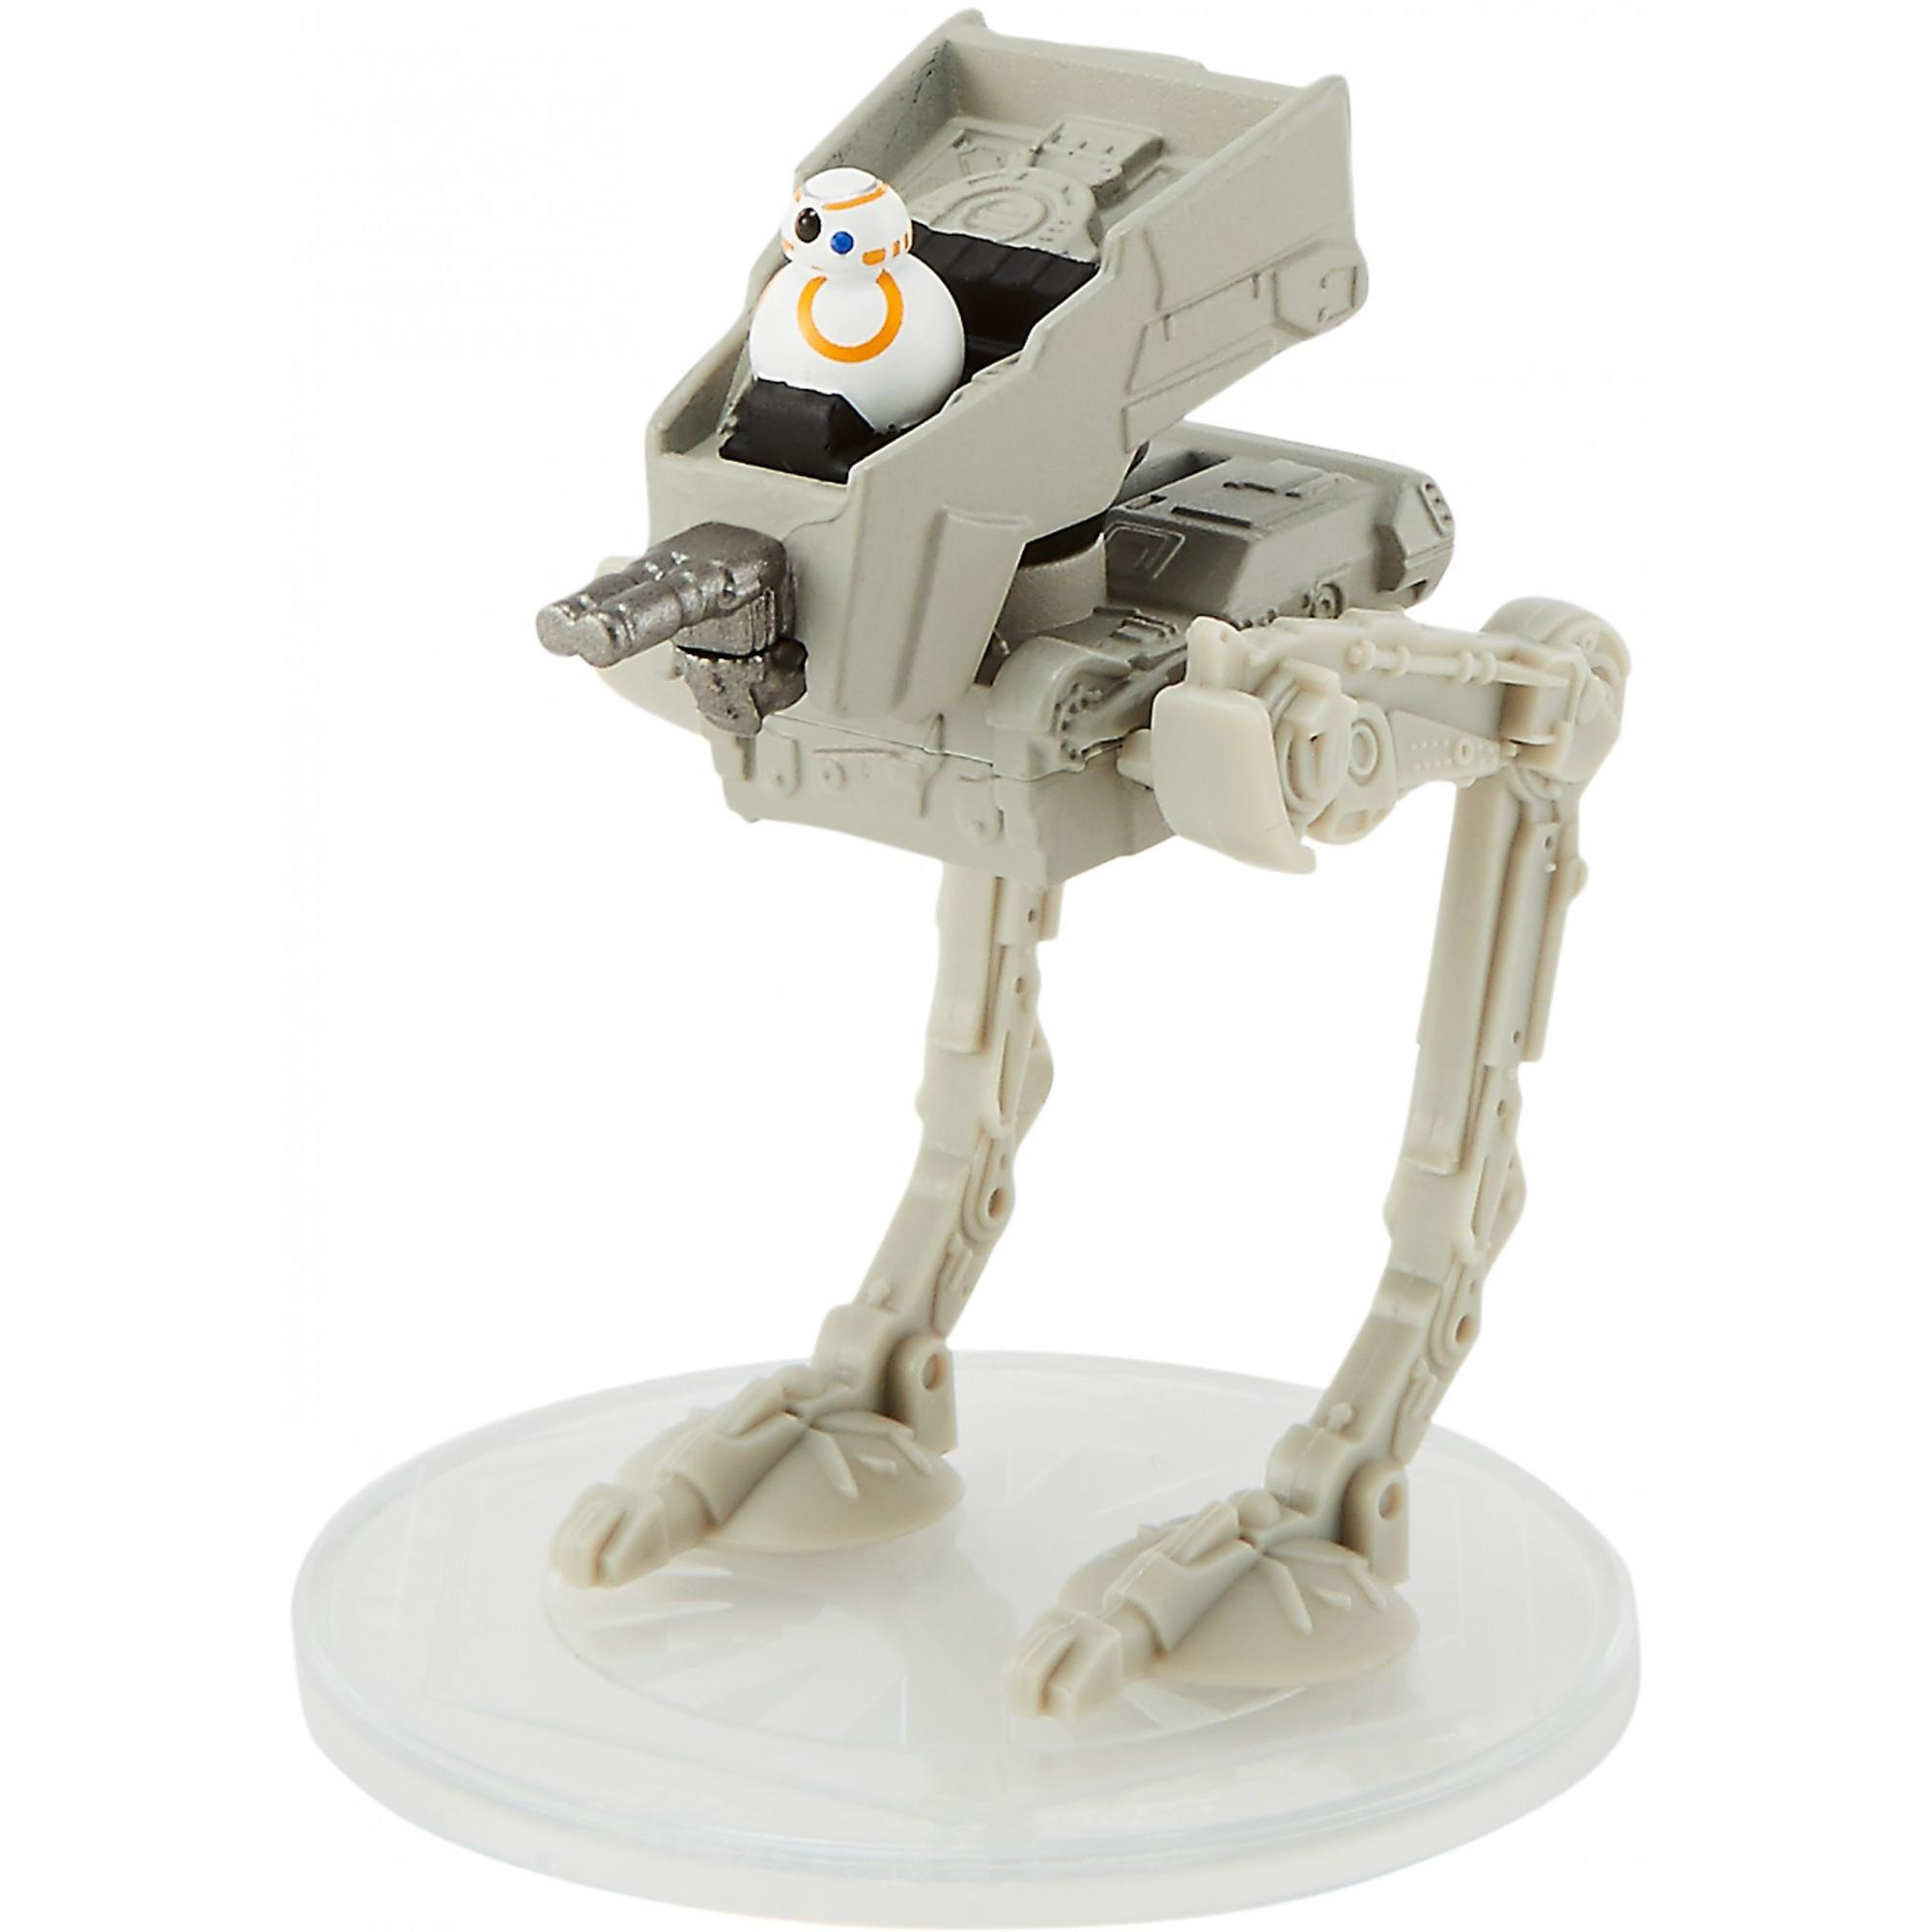 TROS HW AT-ST with BB-8 Starship Toy 1